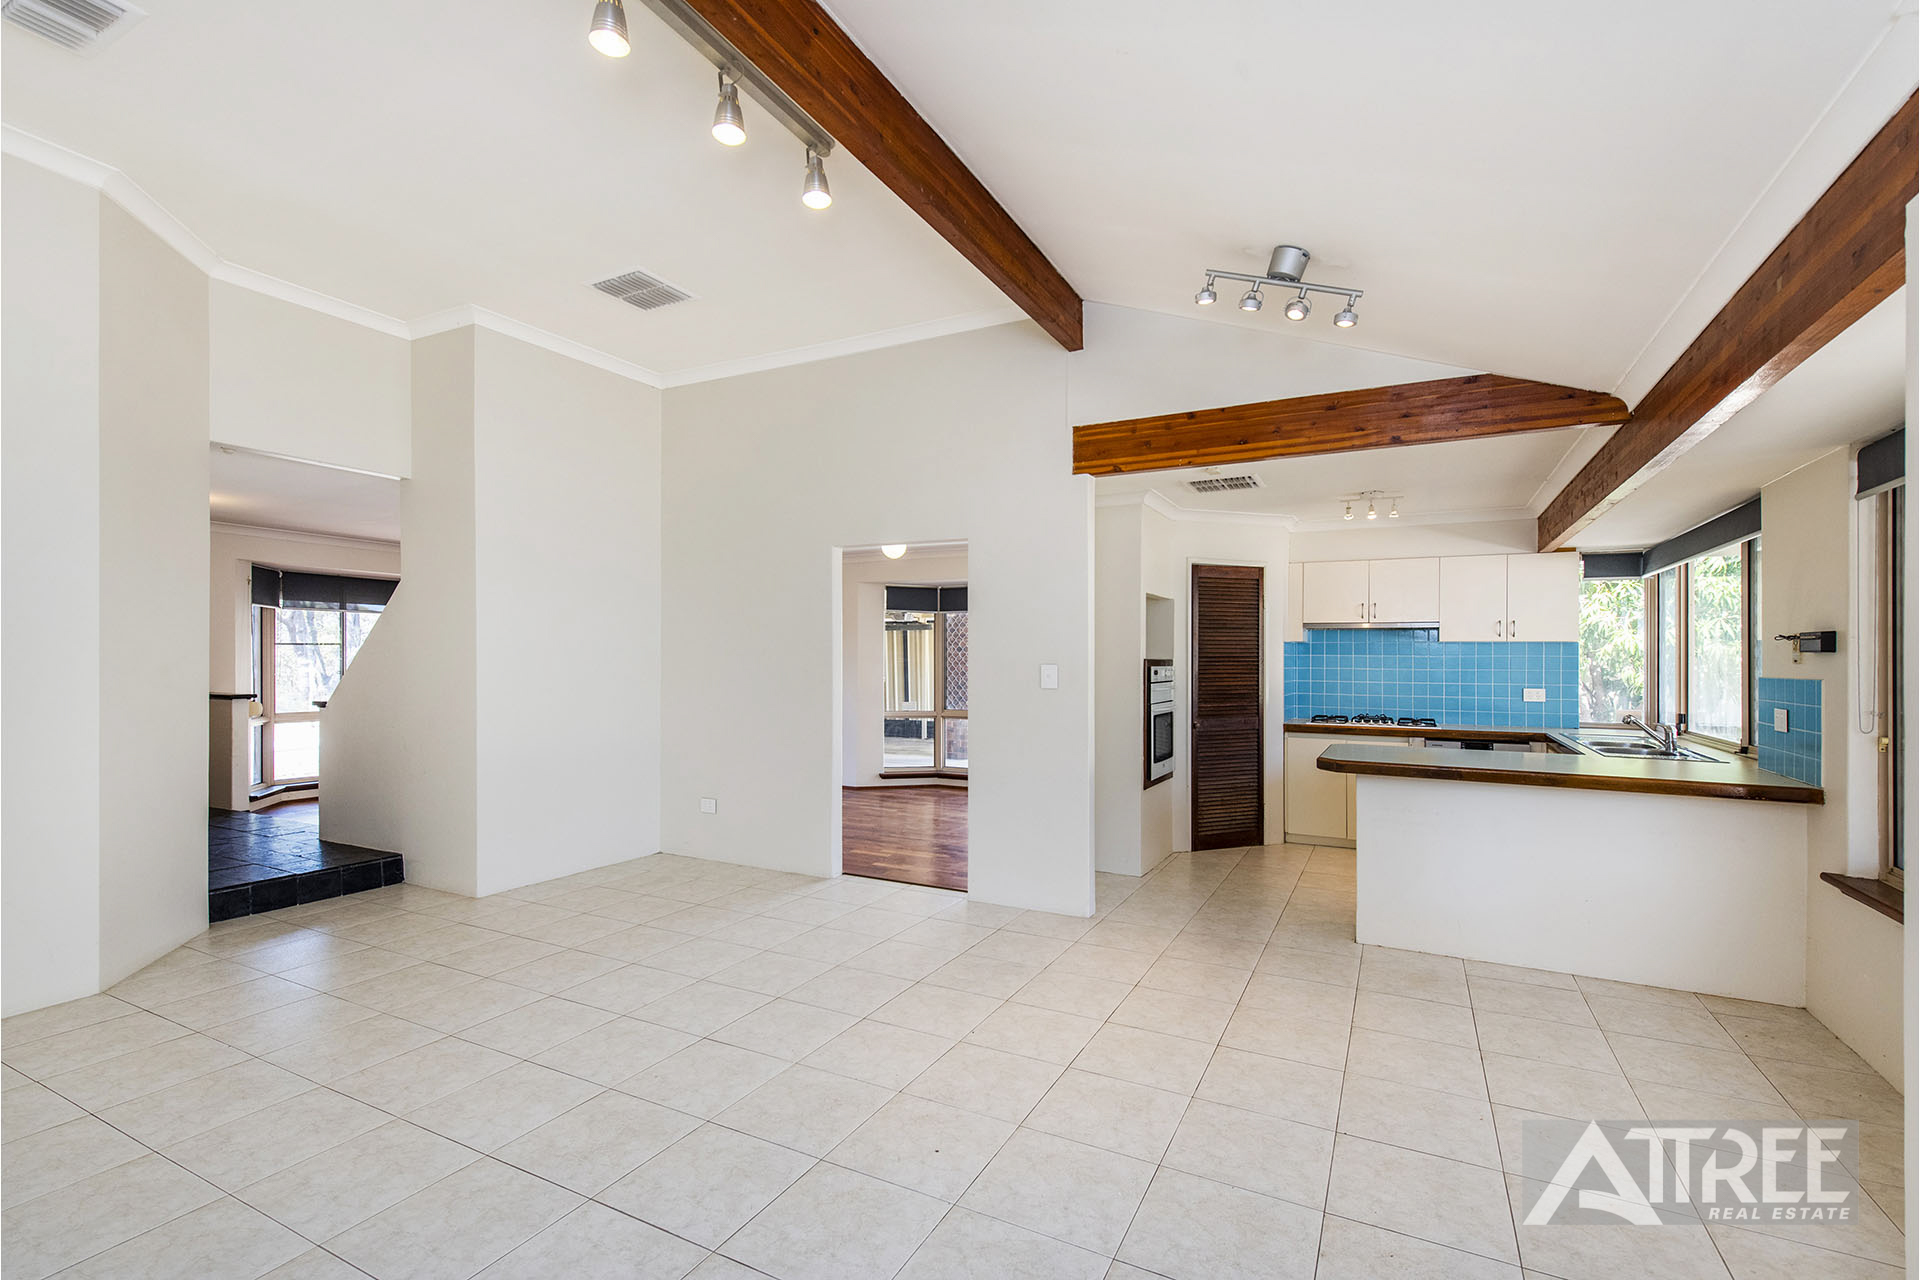 Property for sale in MIRRABOOKA, 16 Polyantha Gardens : Attree Real Estate